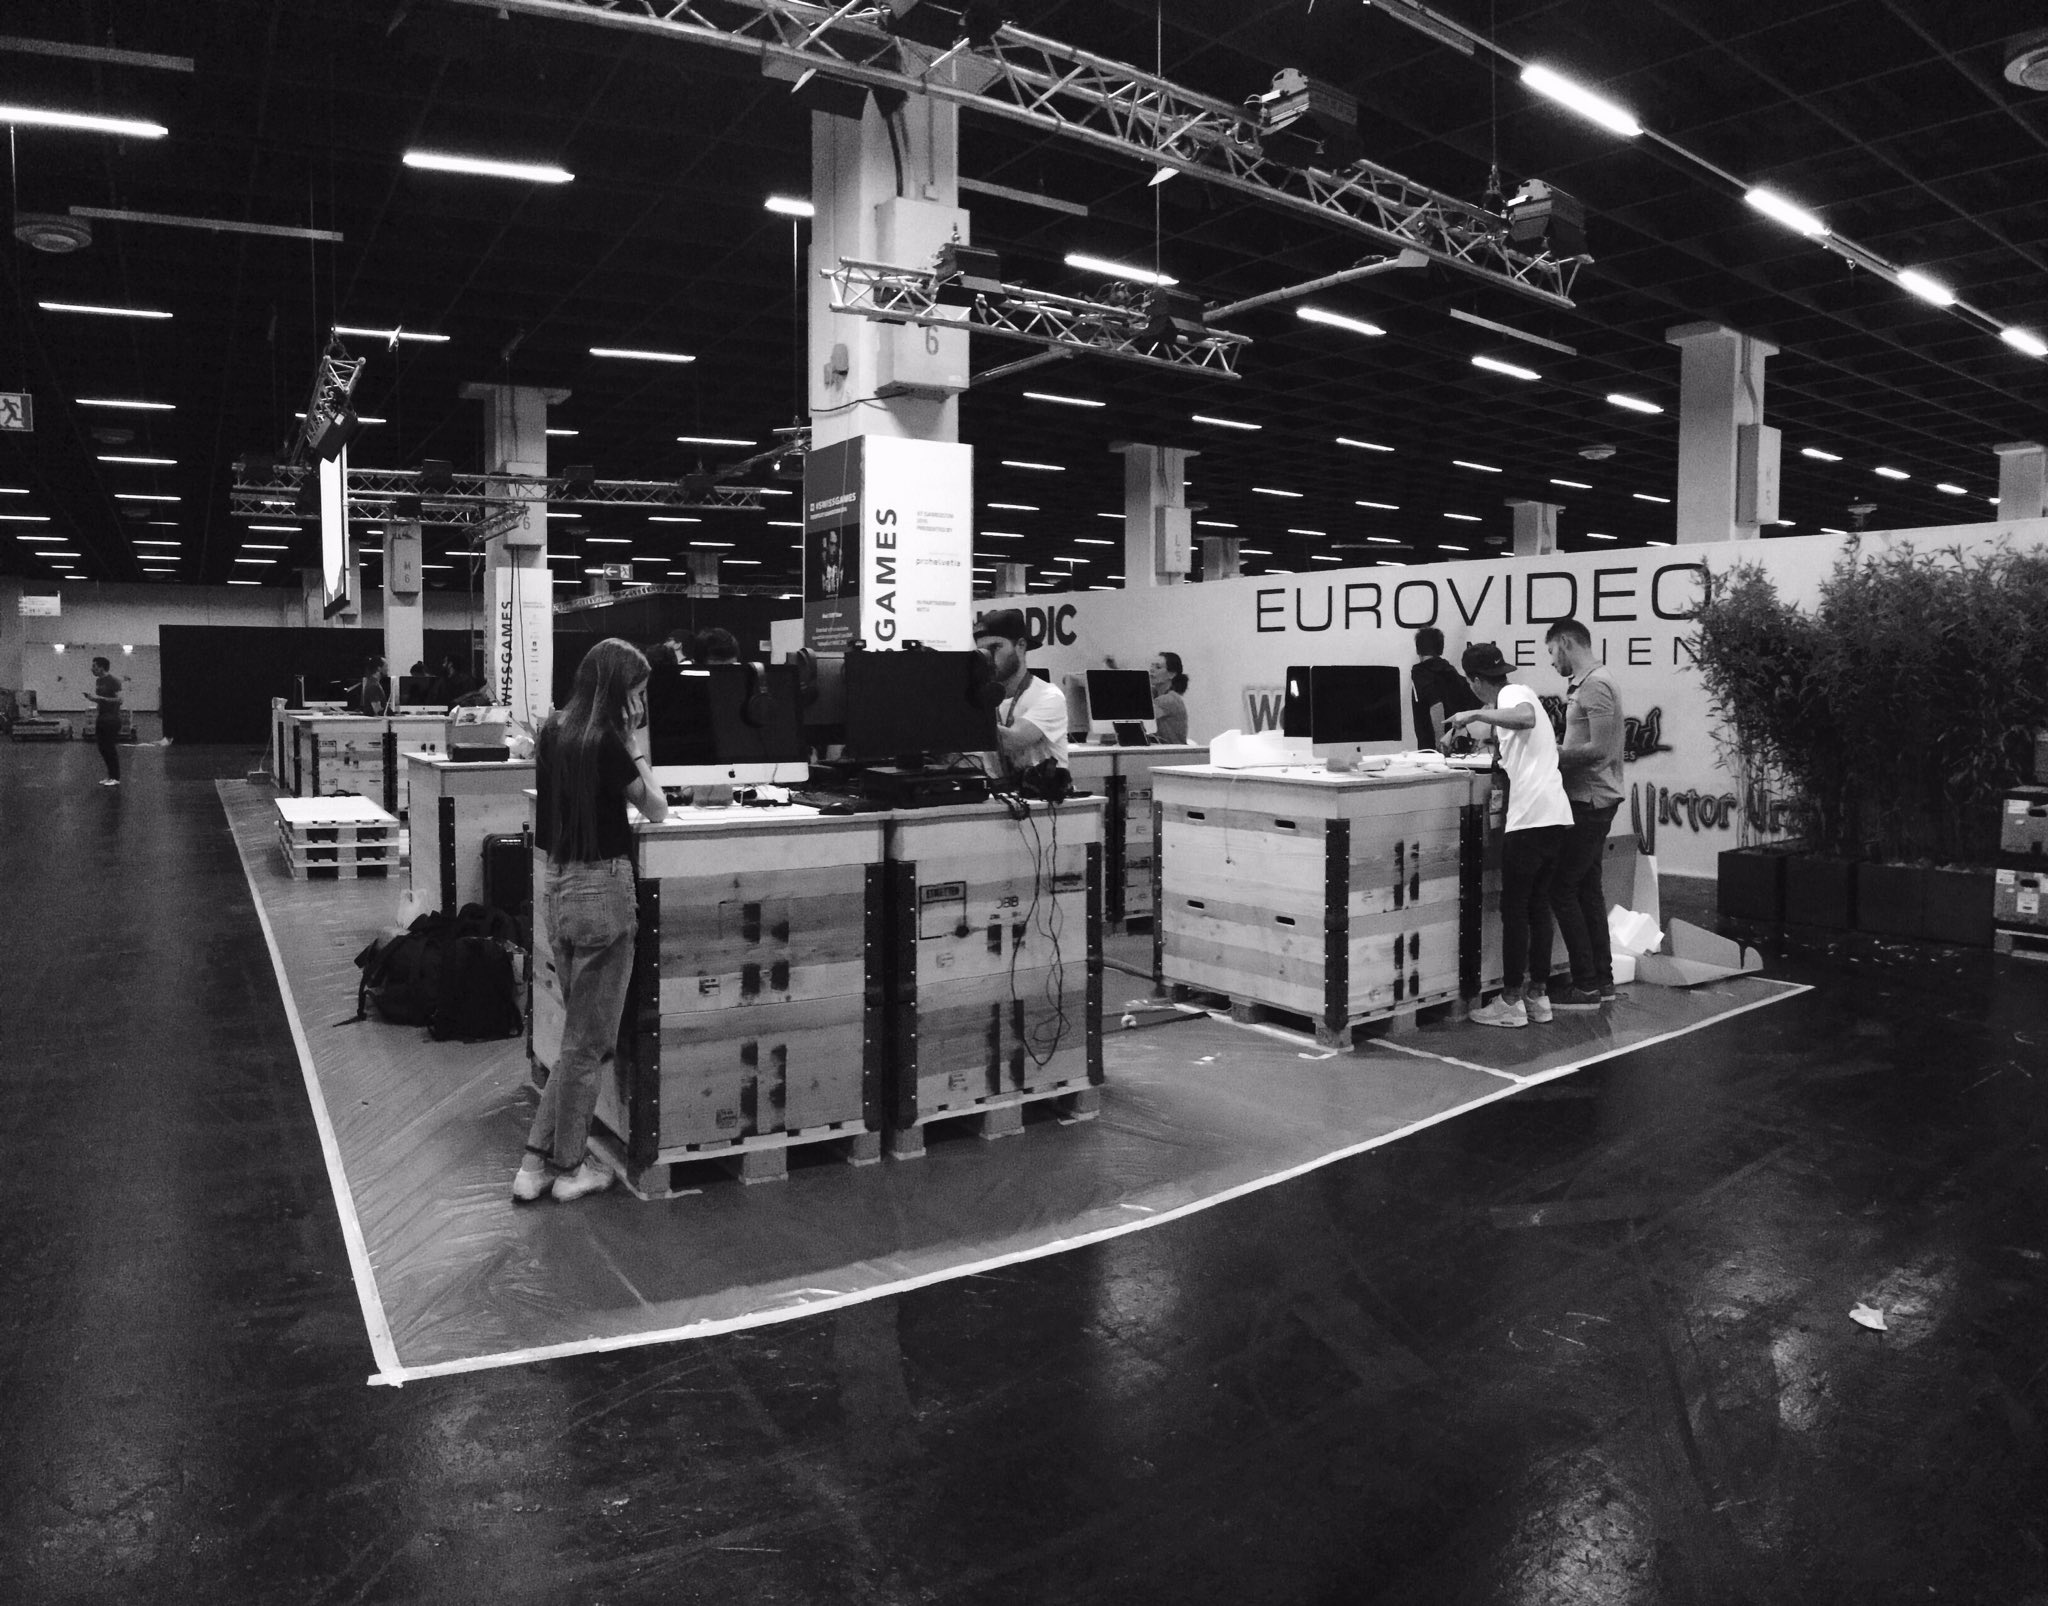 Our #swissgames booth @gamescom. Work in progress. #zhdk #gamescom2016 #gamedev #minimalism #greyscale https://t.co/HOKsokOqy5